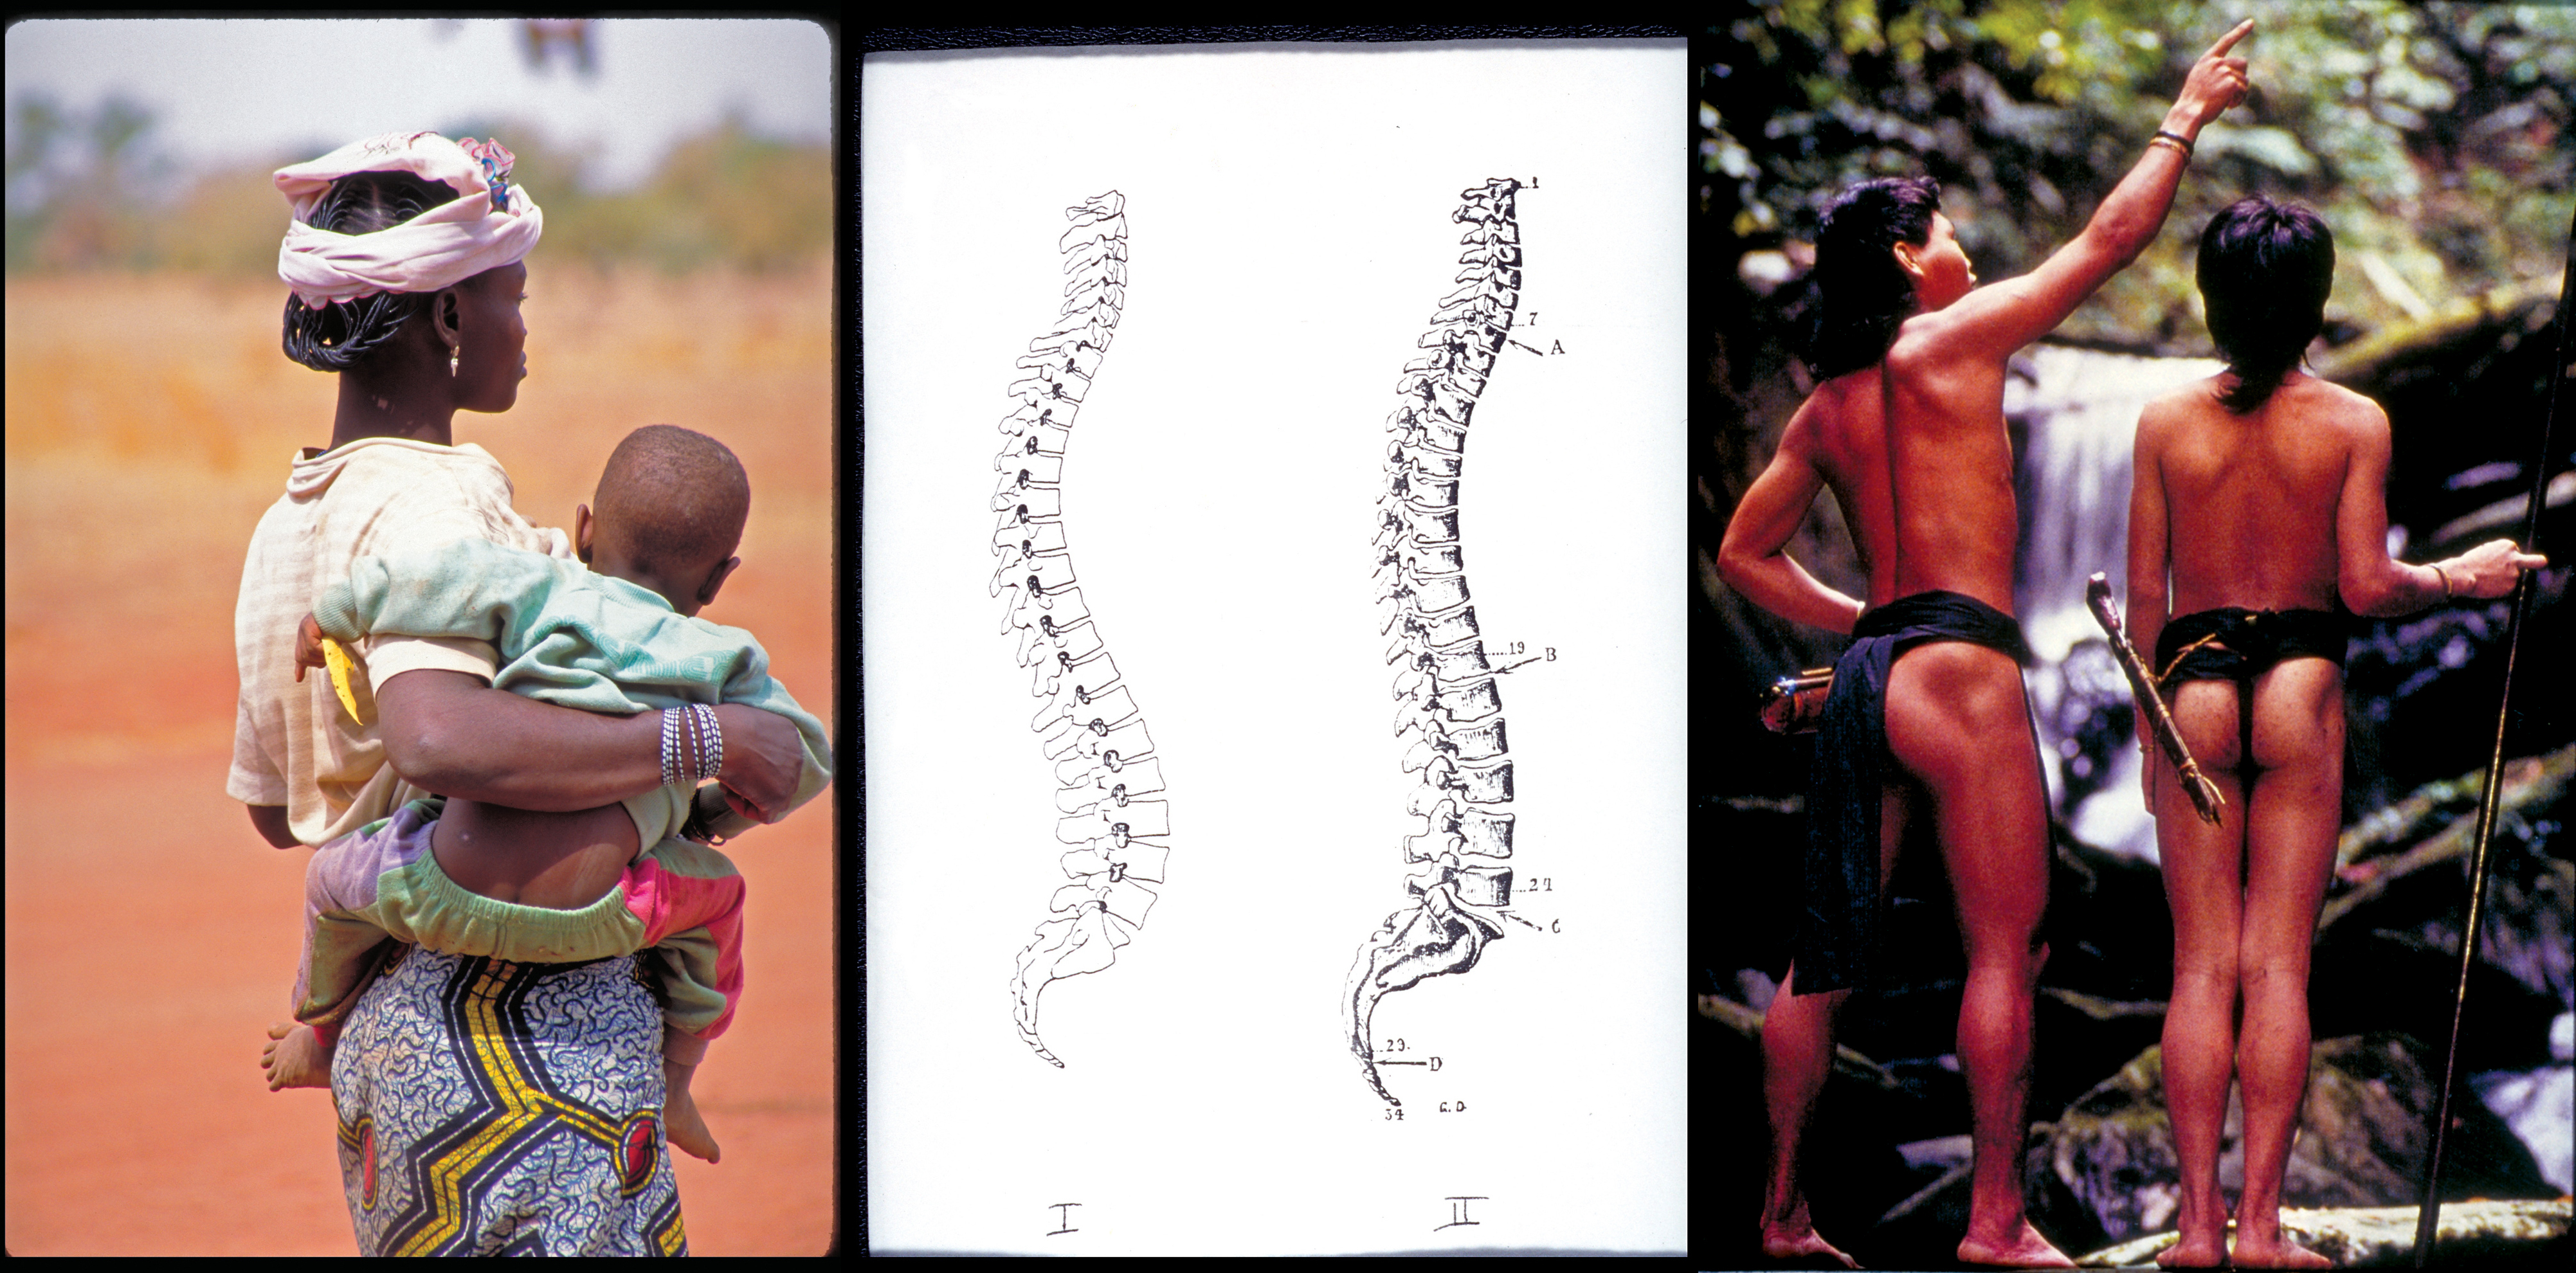 Lost Posture: Why Some Indigenous Cultures May Not Have Back Pain